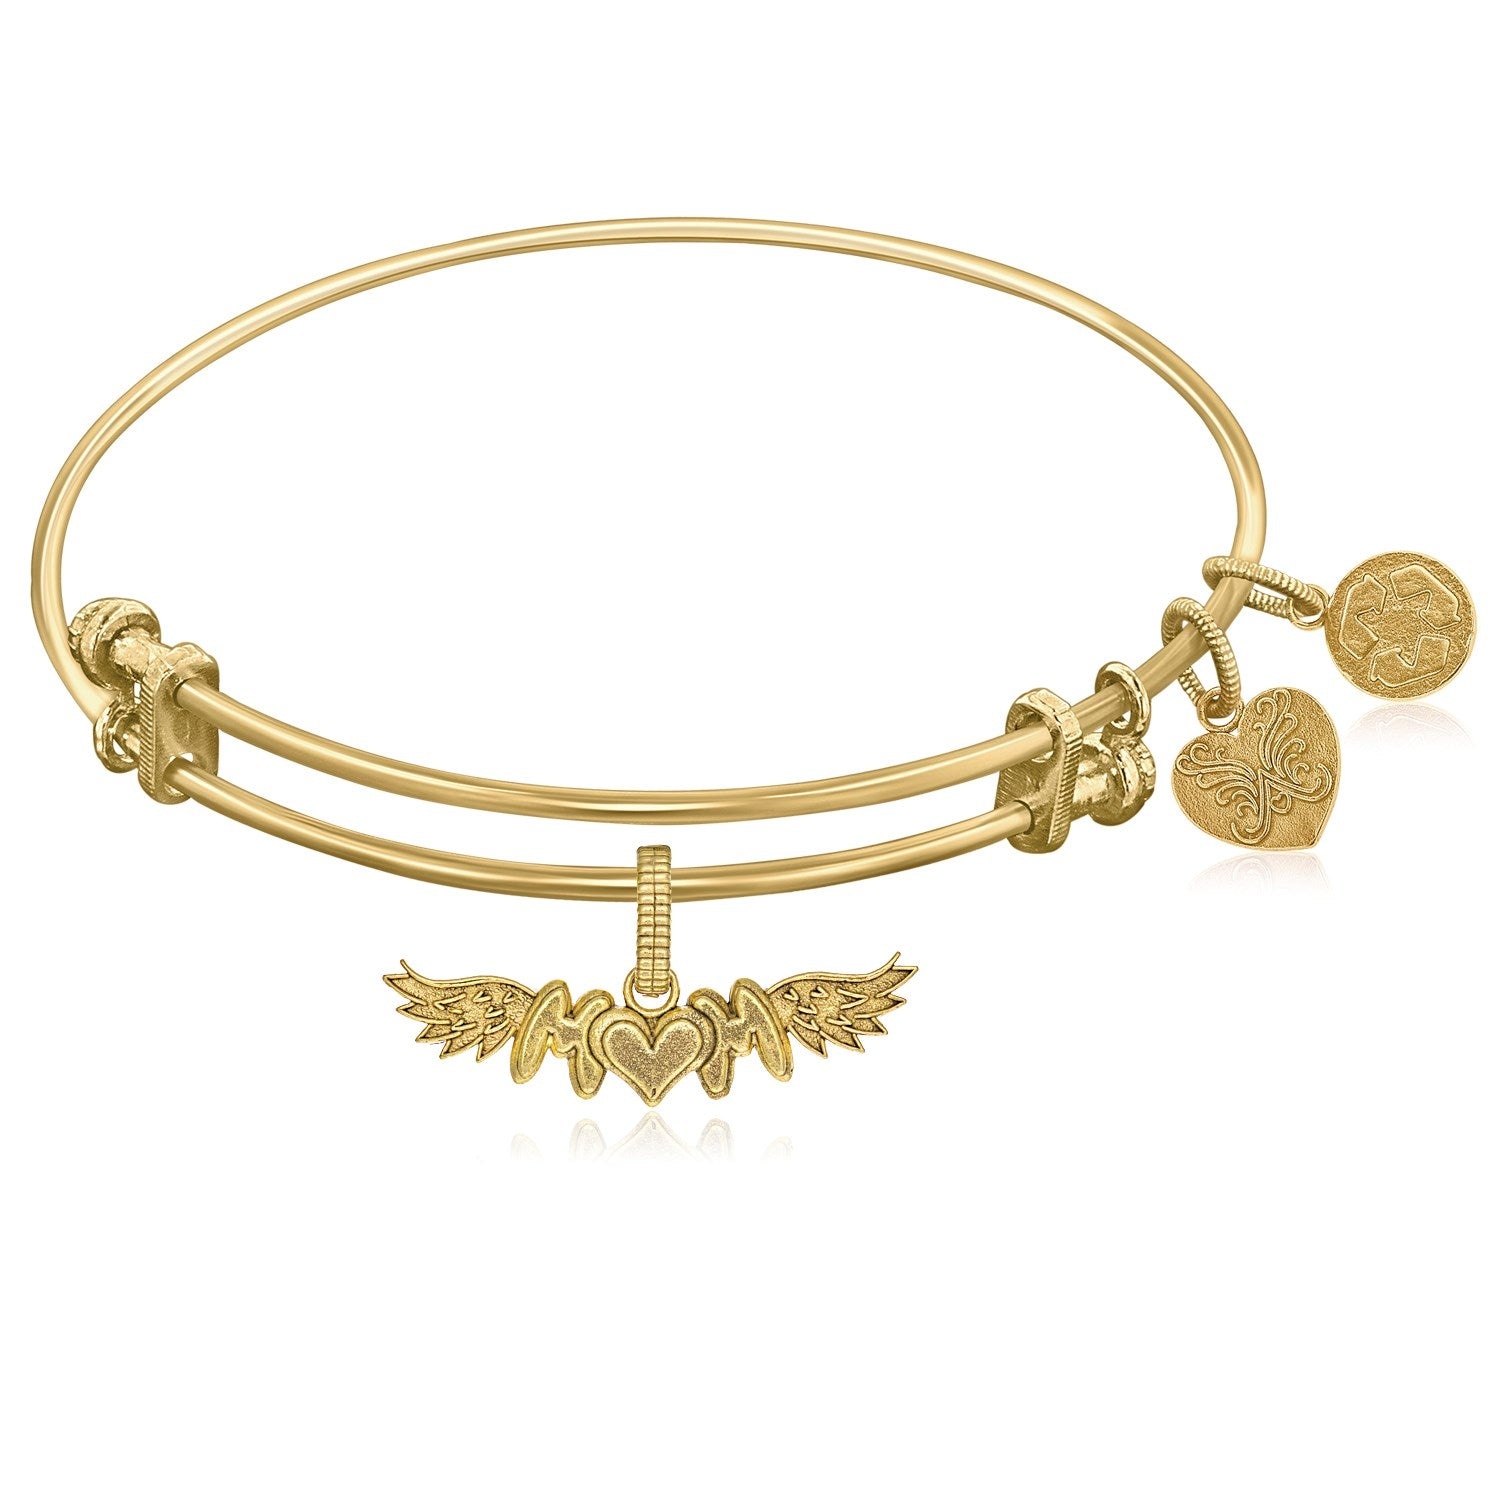 Expandable Yellow Tone Brass Bangle with Finish M-Heart-M With Wing Symbol